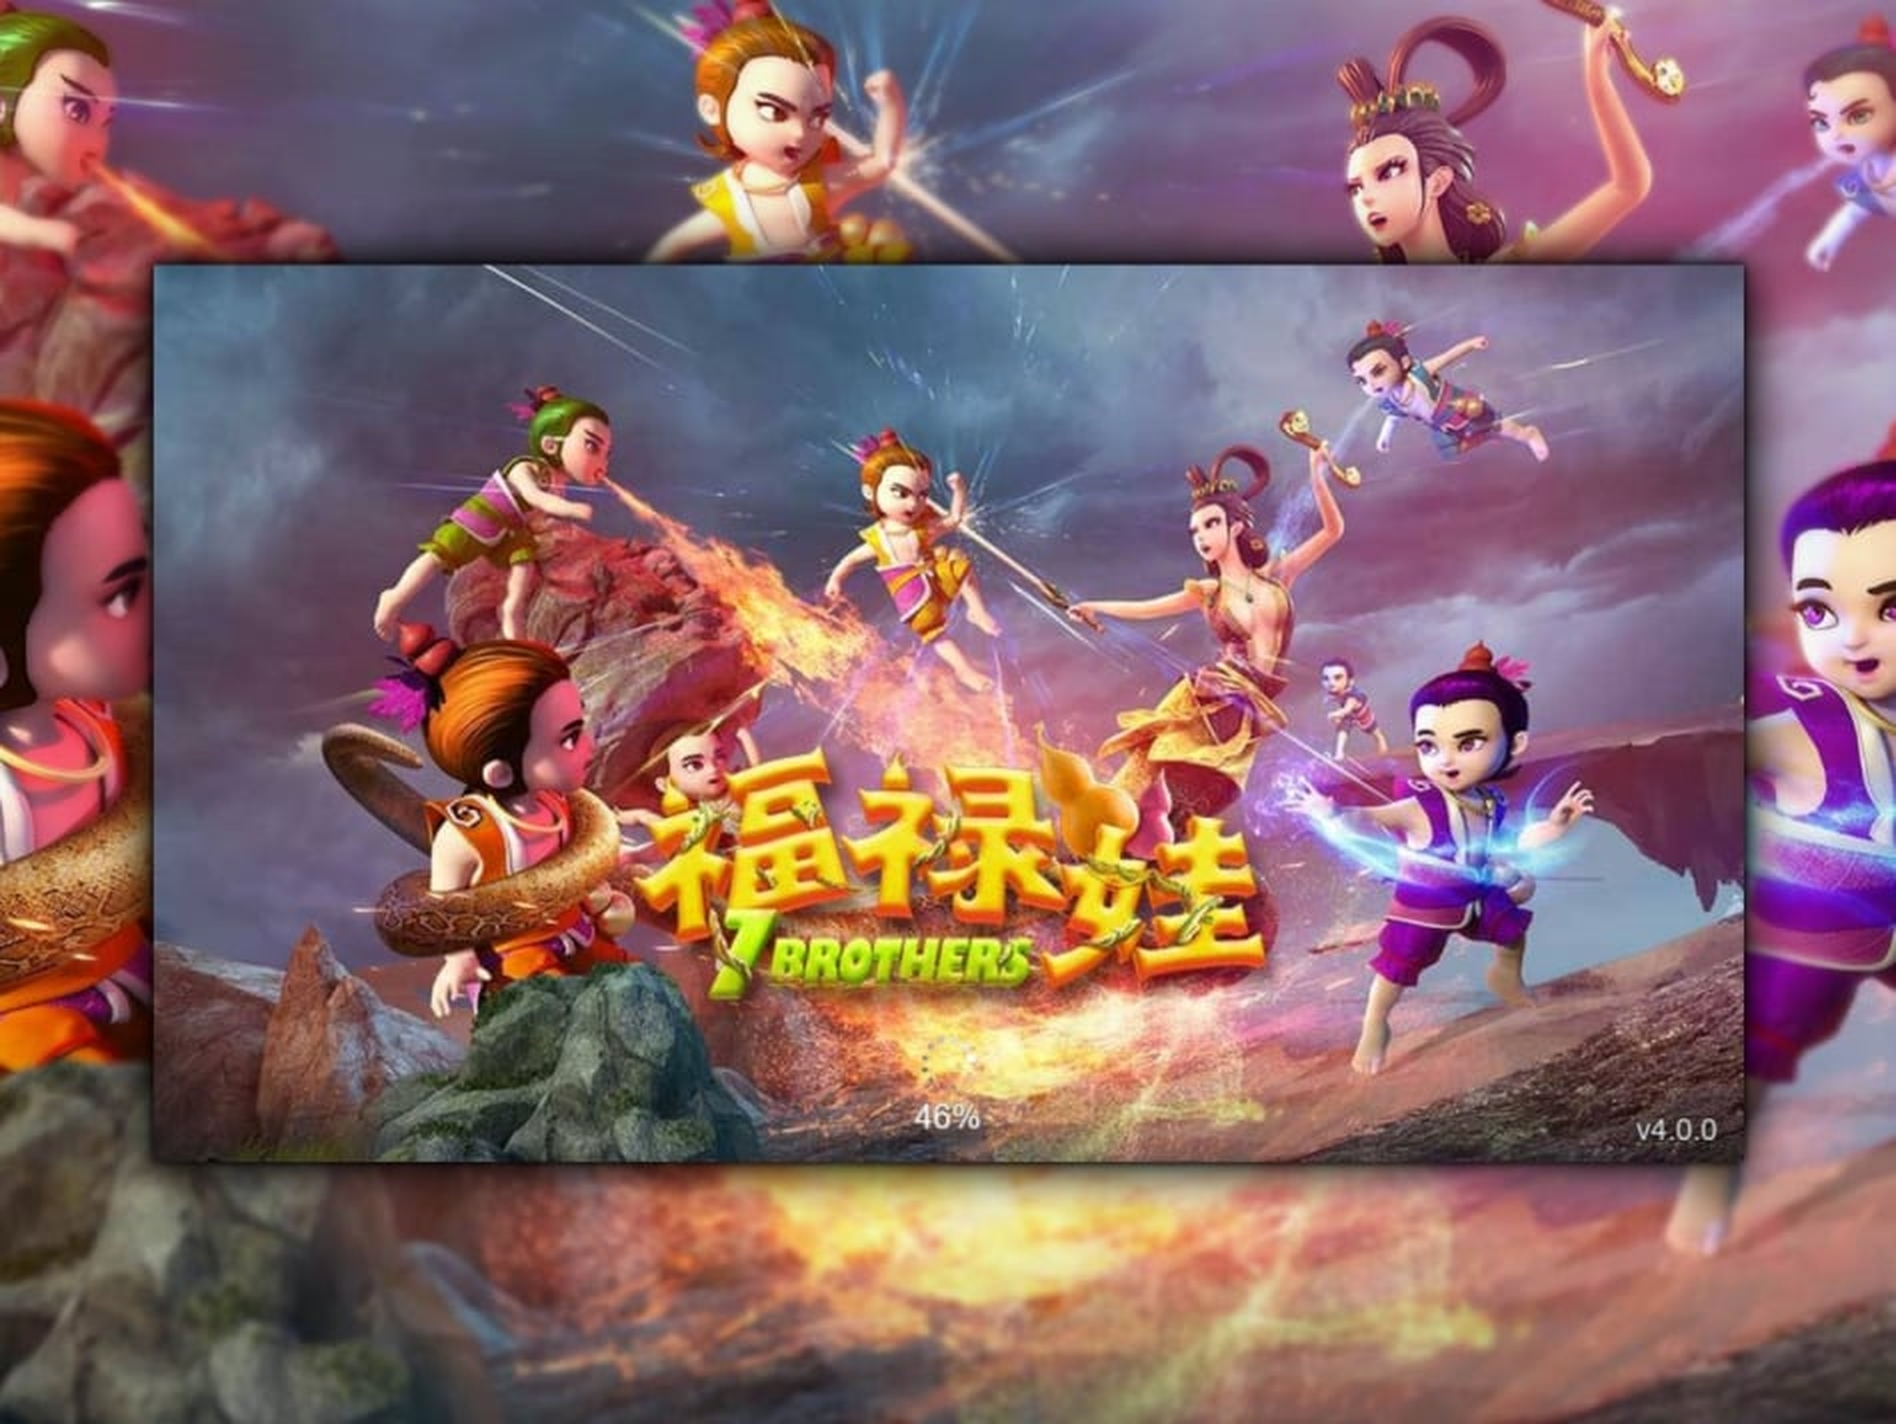 The 7 Brothers Online Slot Demo Game by Gameplay Interactive